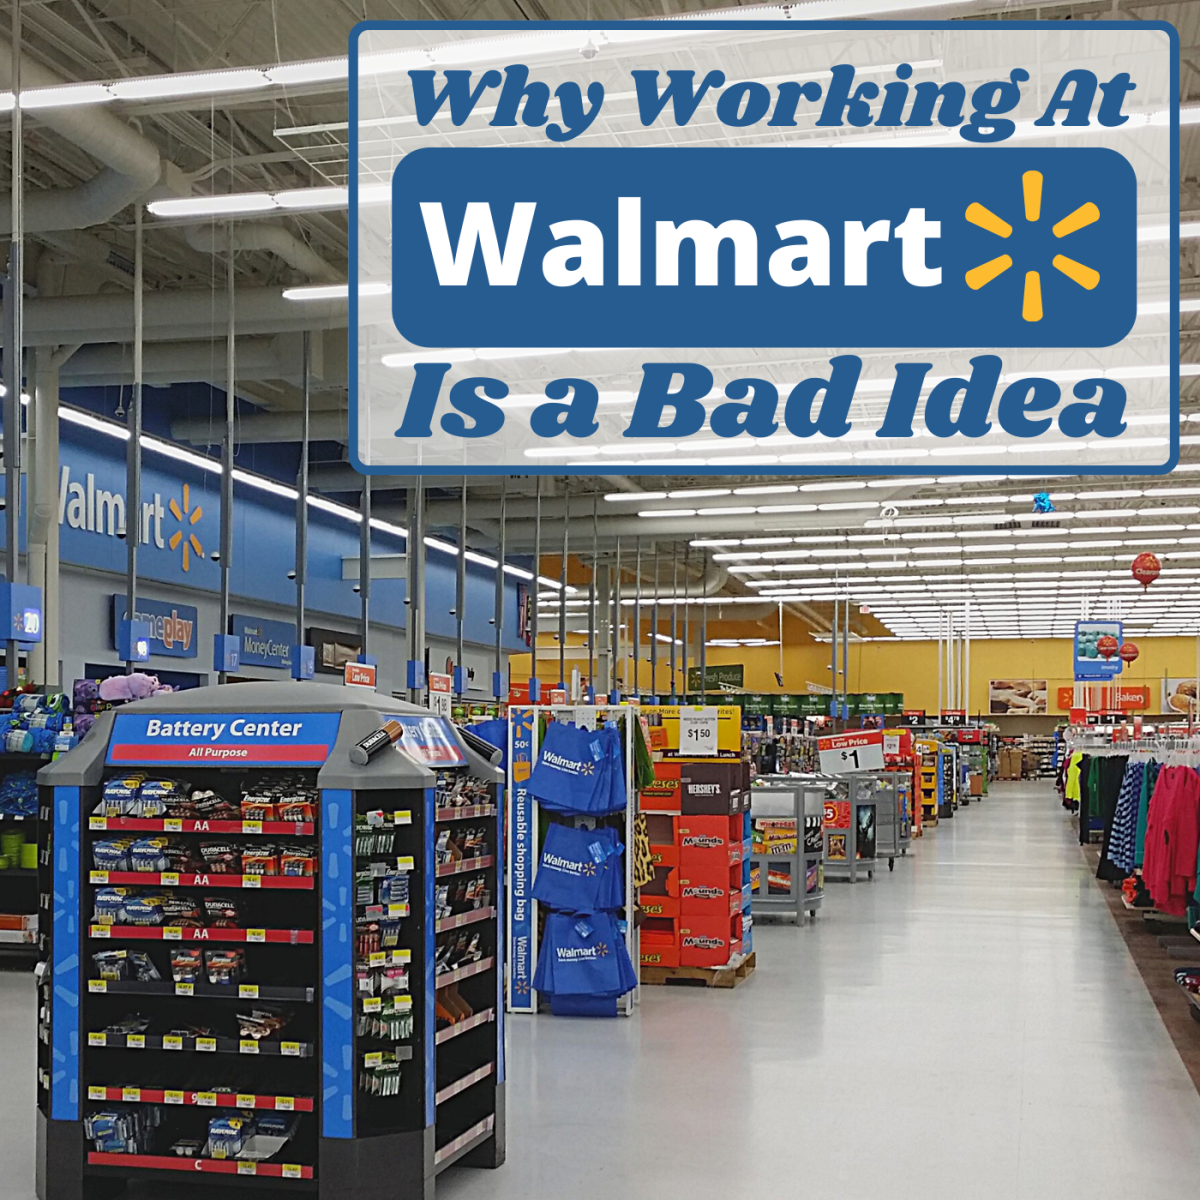 A lot of job seekers look to Walmart for employment, but working for America's favorite mass-scale retailer is not all it's cracked up to be.